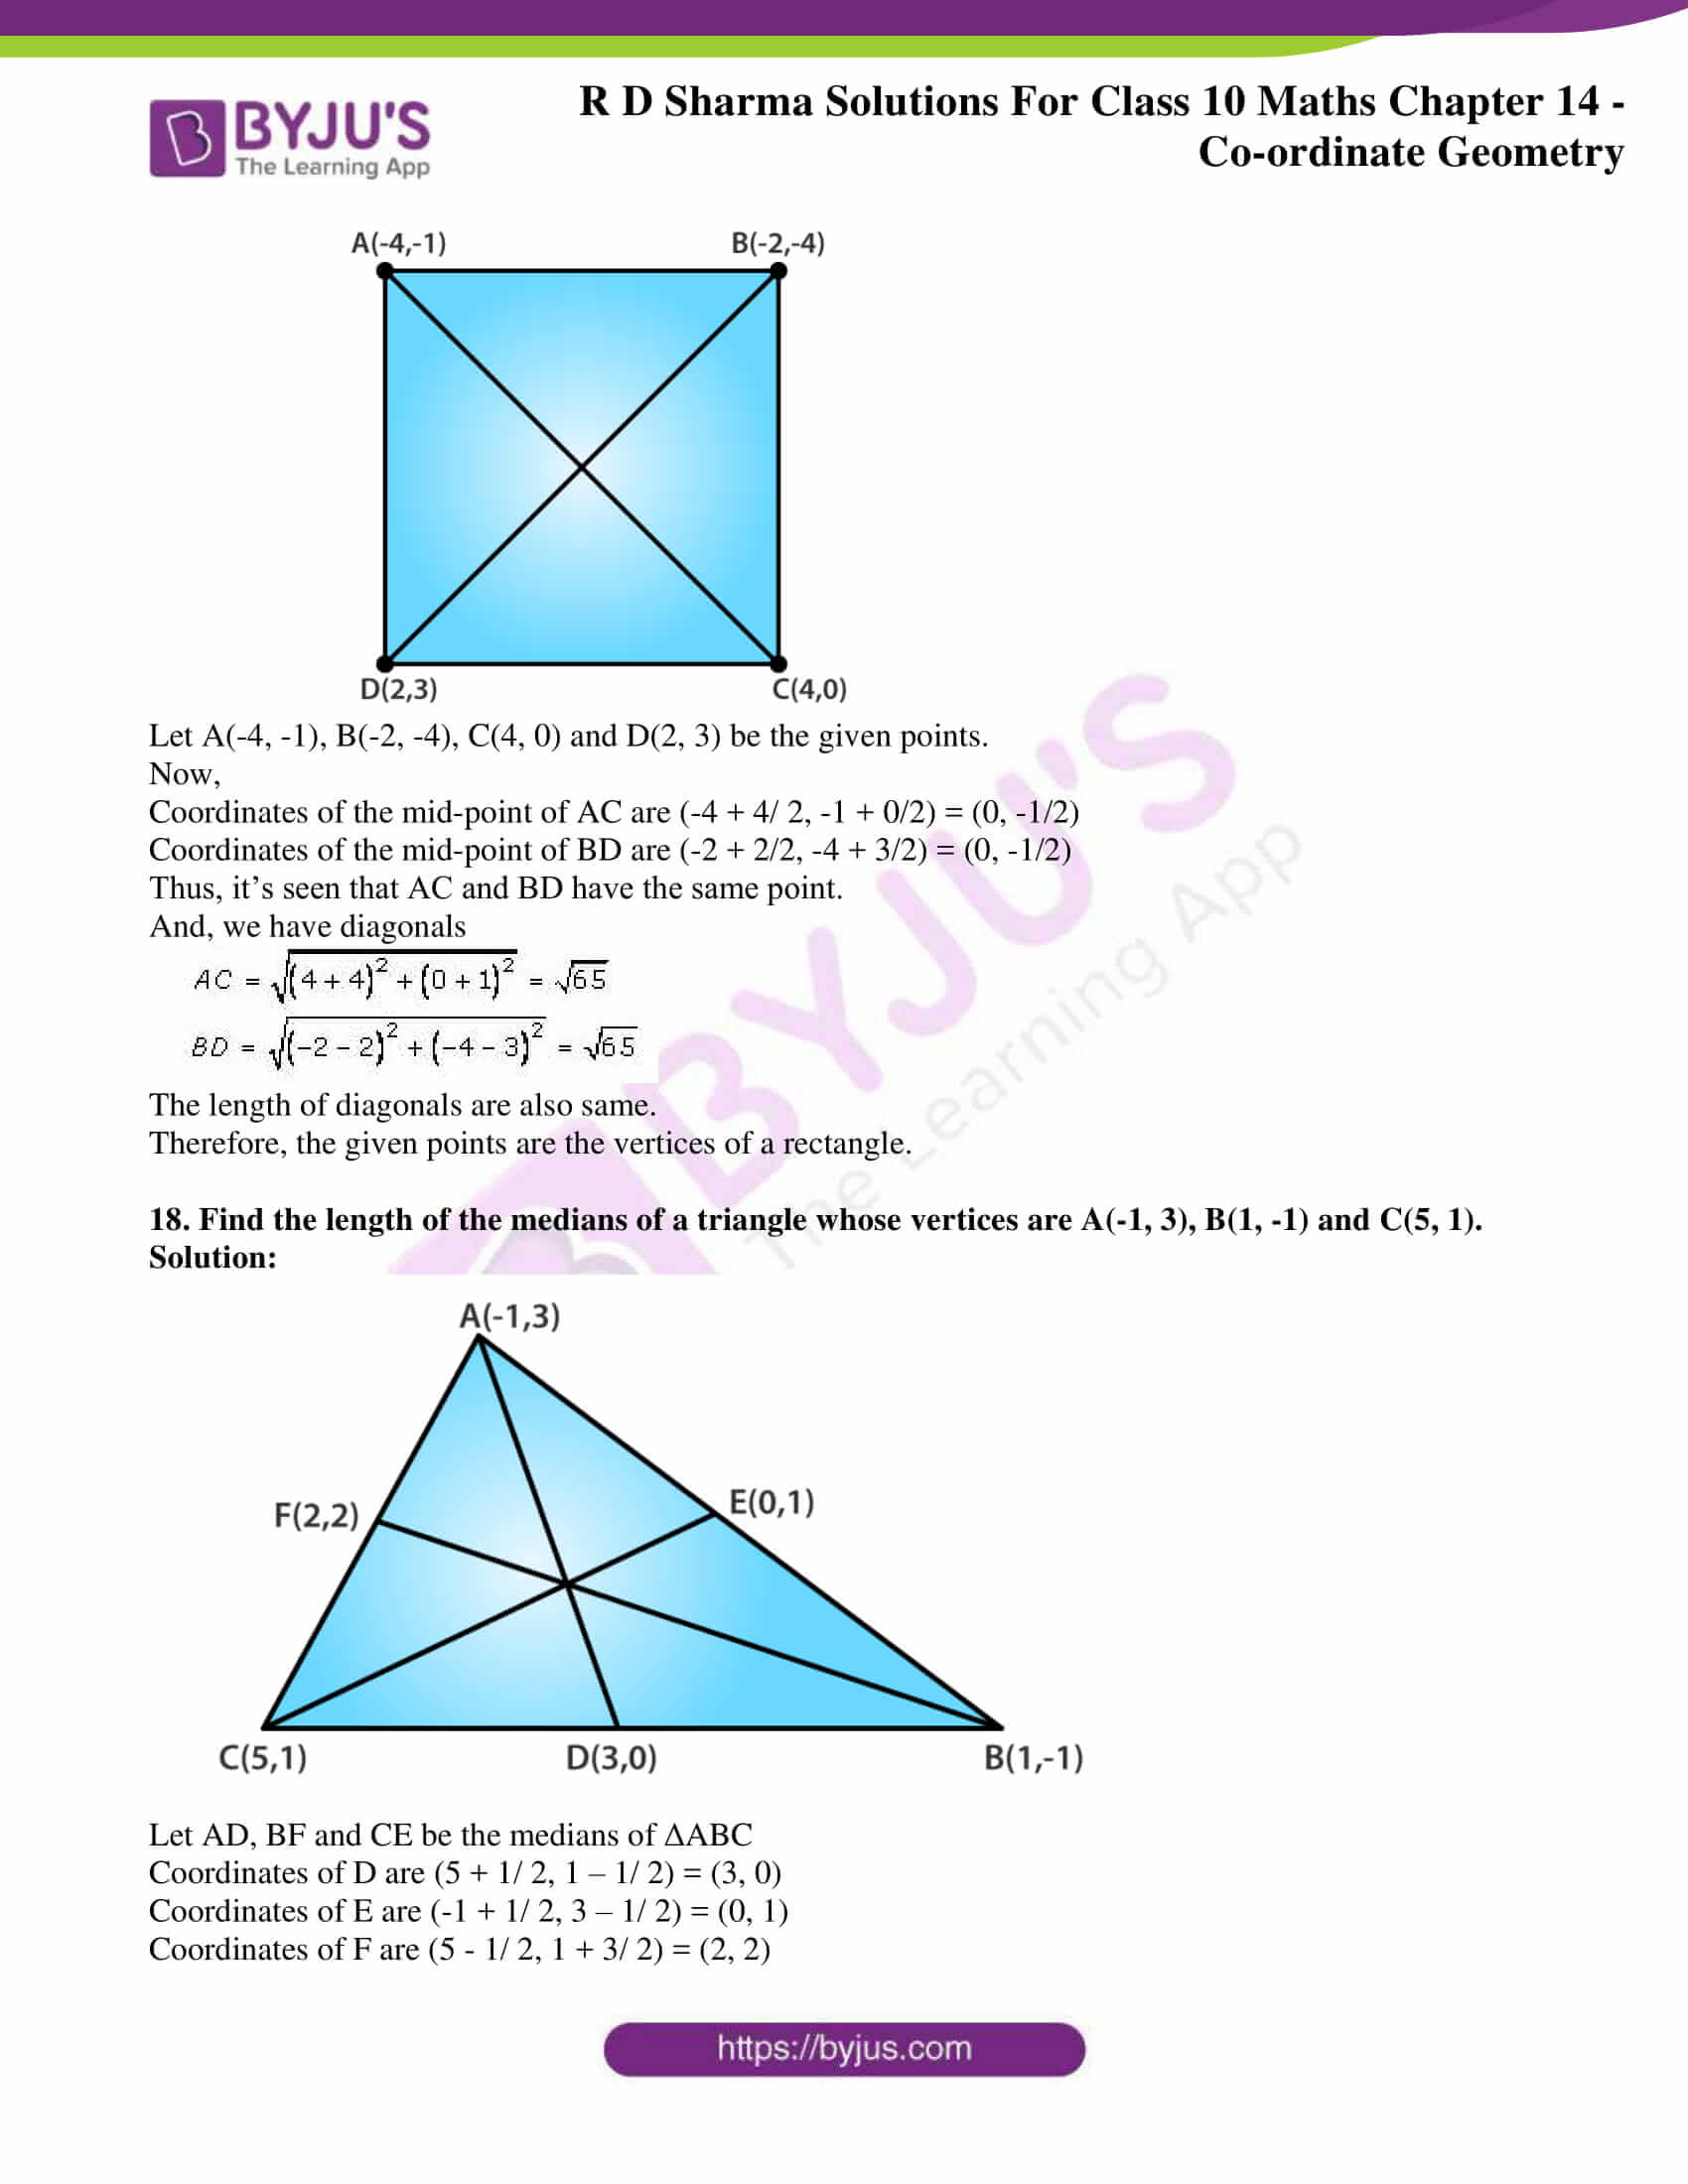 rd sharma solutions class 10 chapter 14 exercise 3